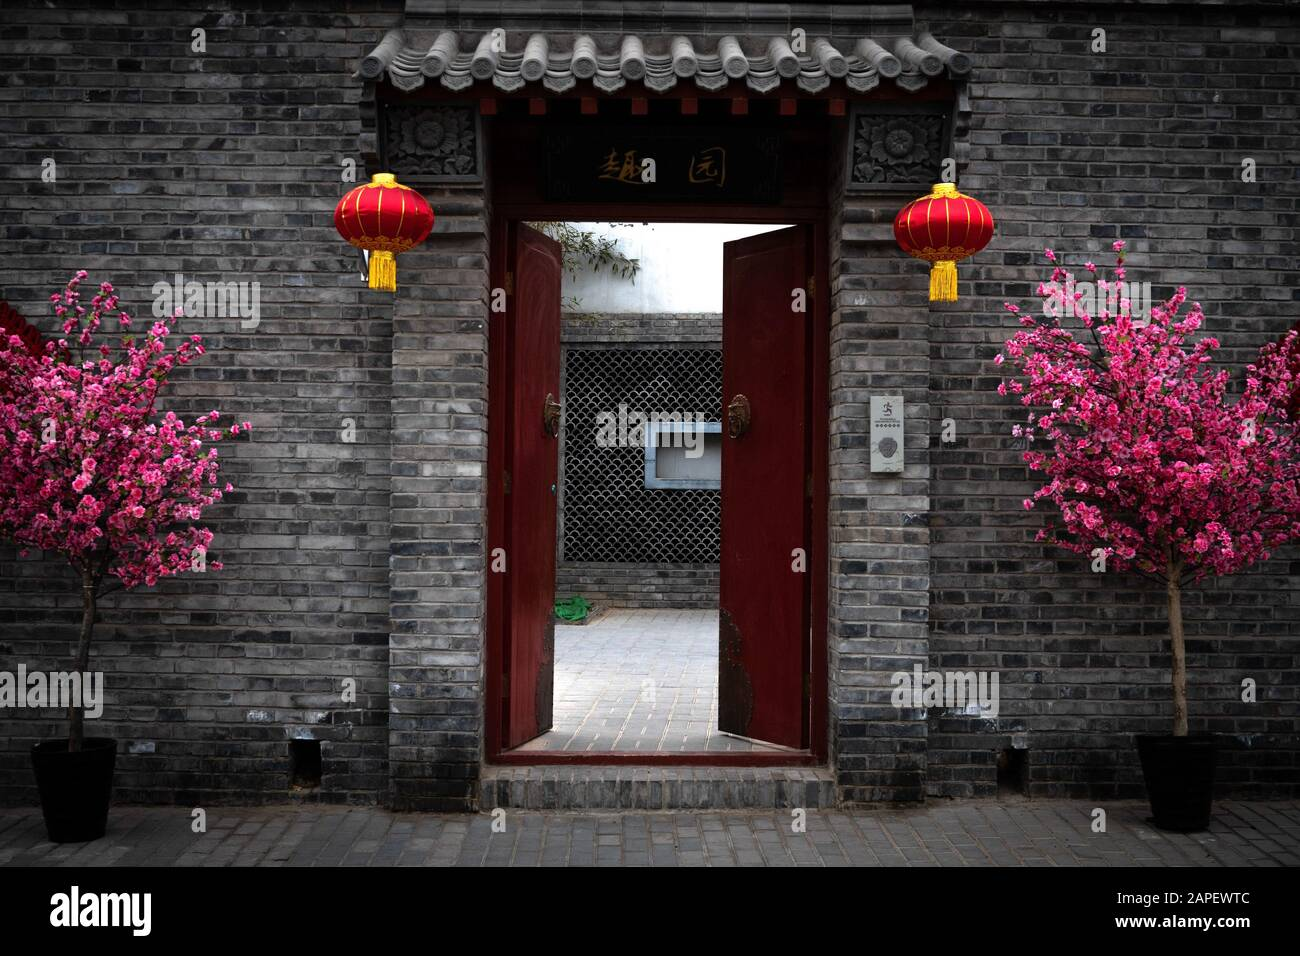 Red door and gate giving entrance to a private courtyard and a dwelling house in a hutong alley in Beijing, China. Decorated for the Chinese New Year Stock Photo